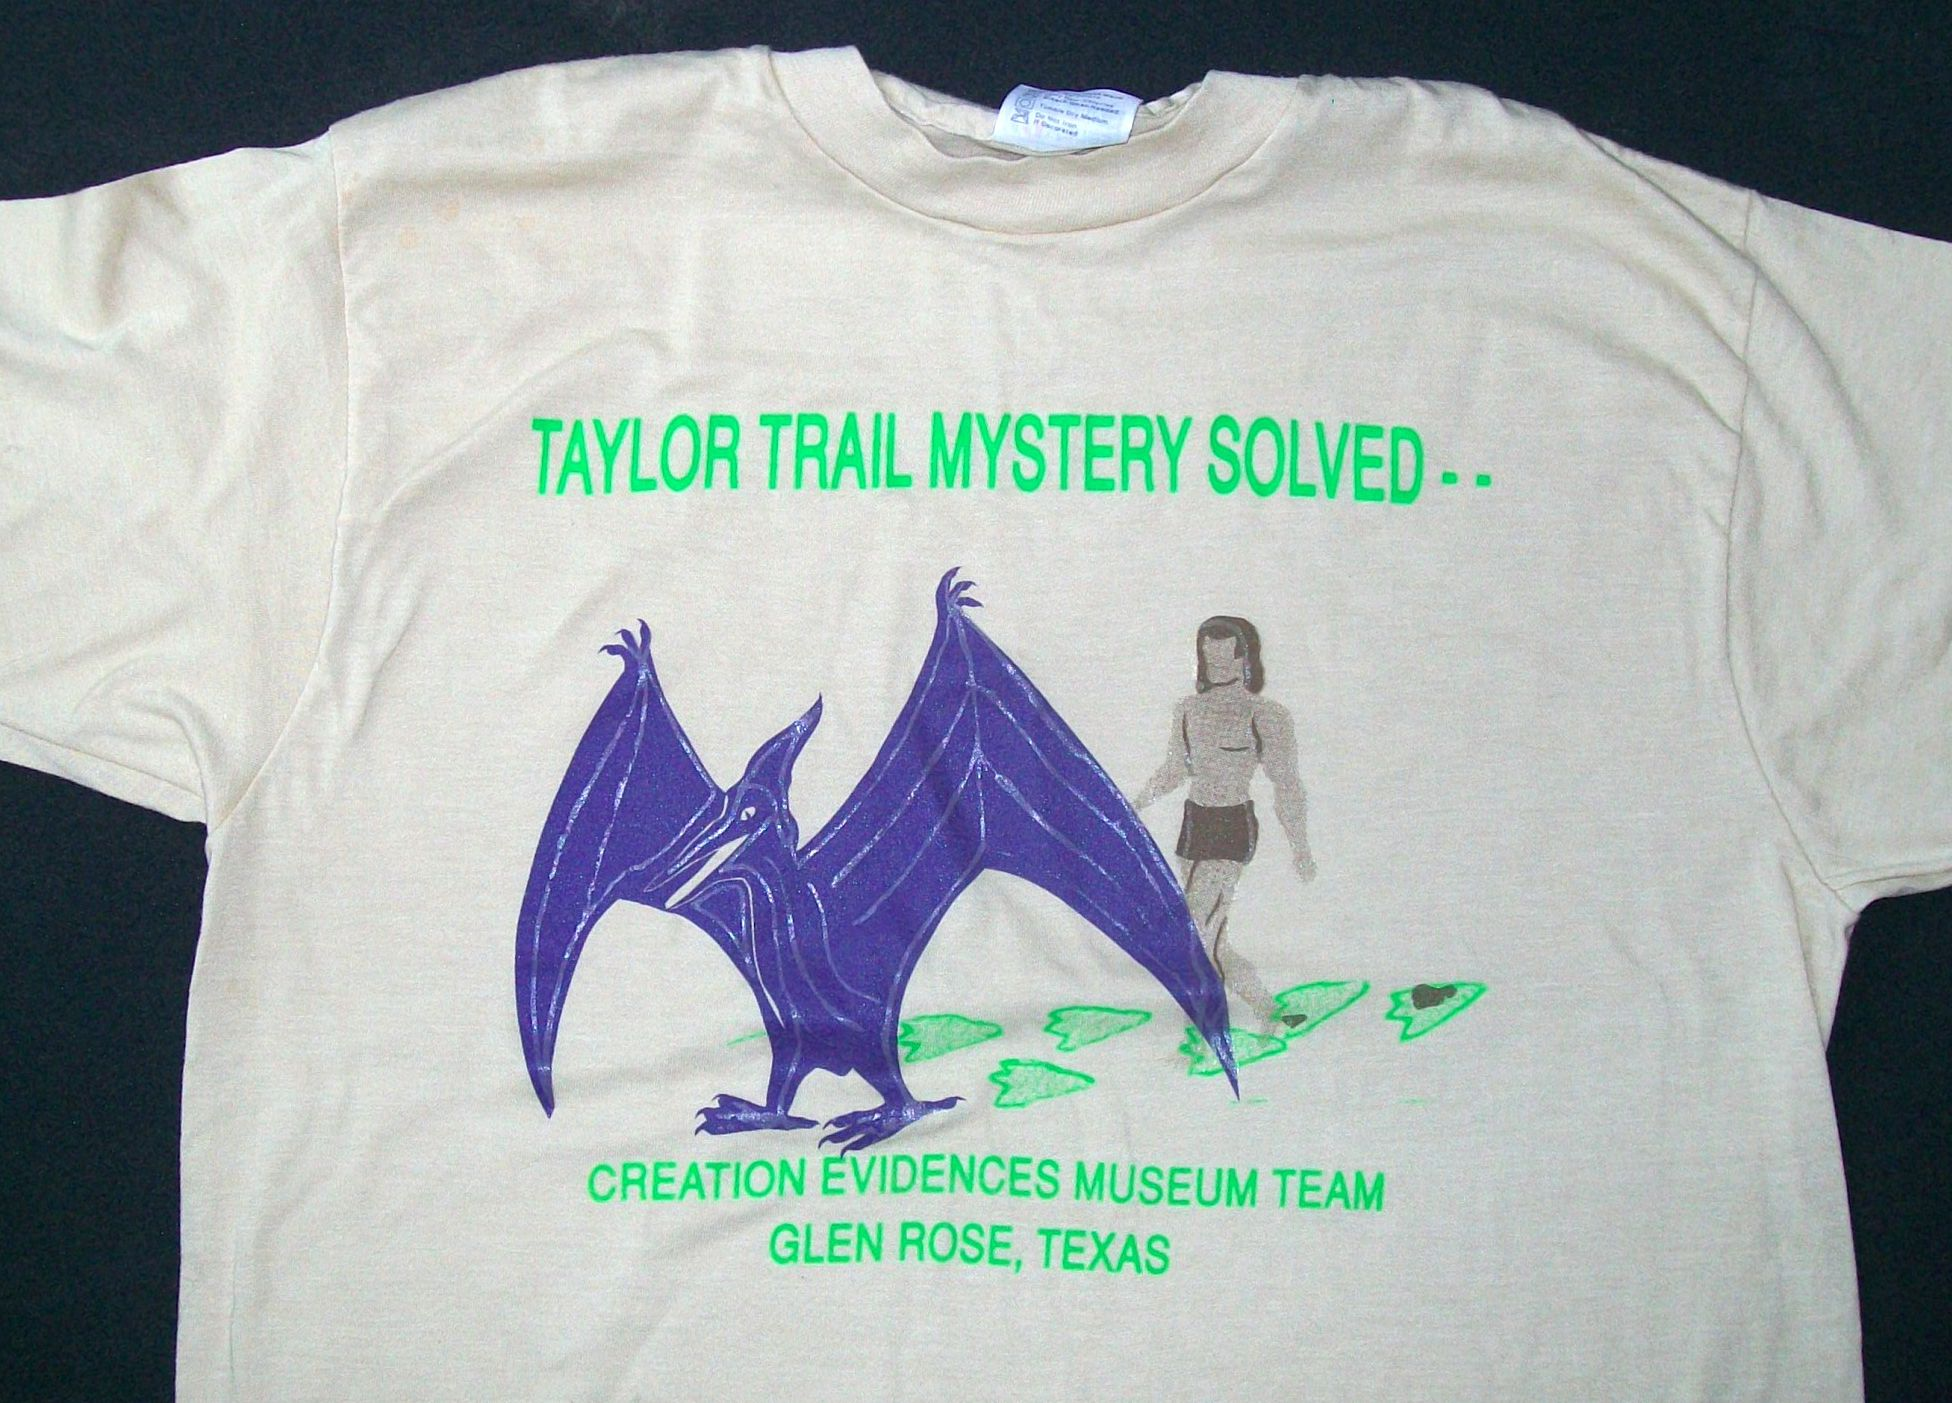 T-Shirt sold by Baugh, promoting pterosaur and human tracks idea